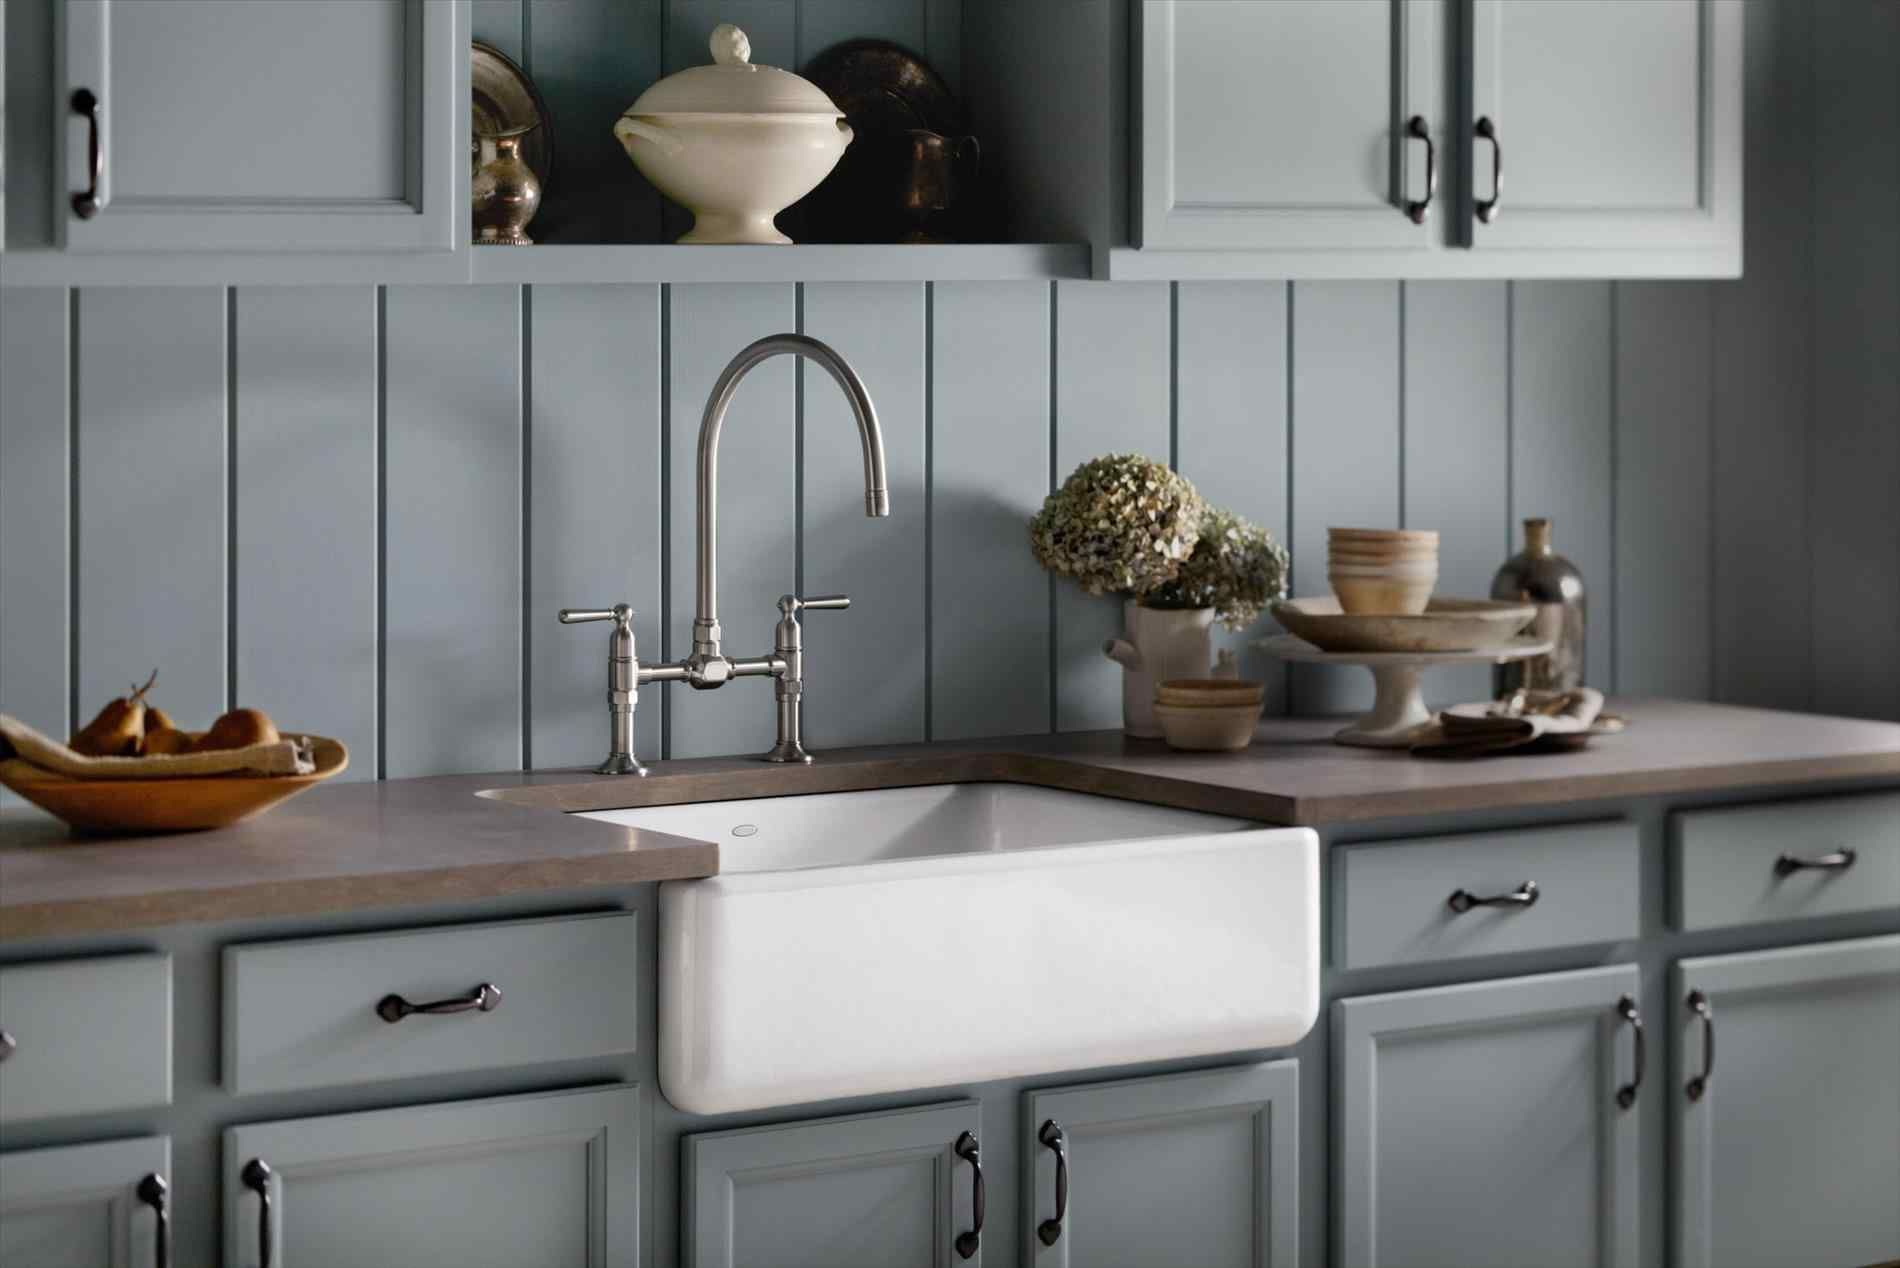 new almond kitchen faucet at xx13 info new almond kitchen faucet at xx13 info   kombuis   pinterest      rh   pinterest com